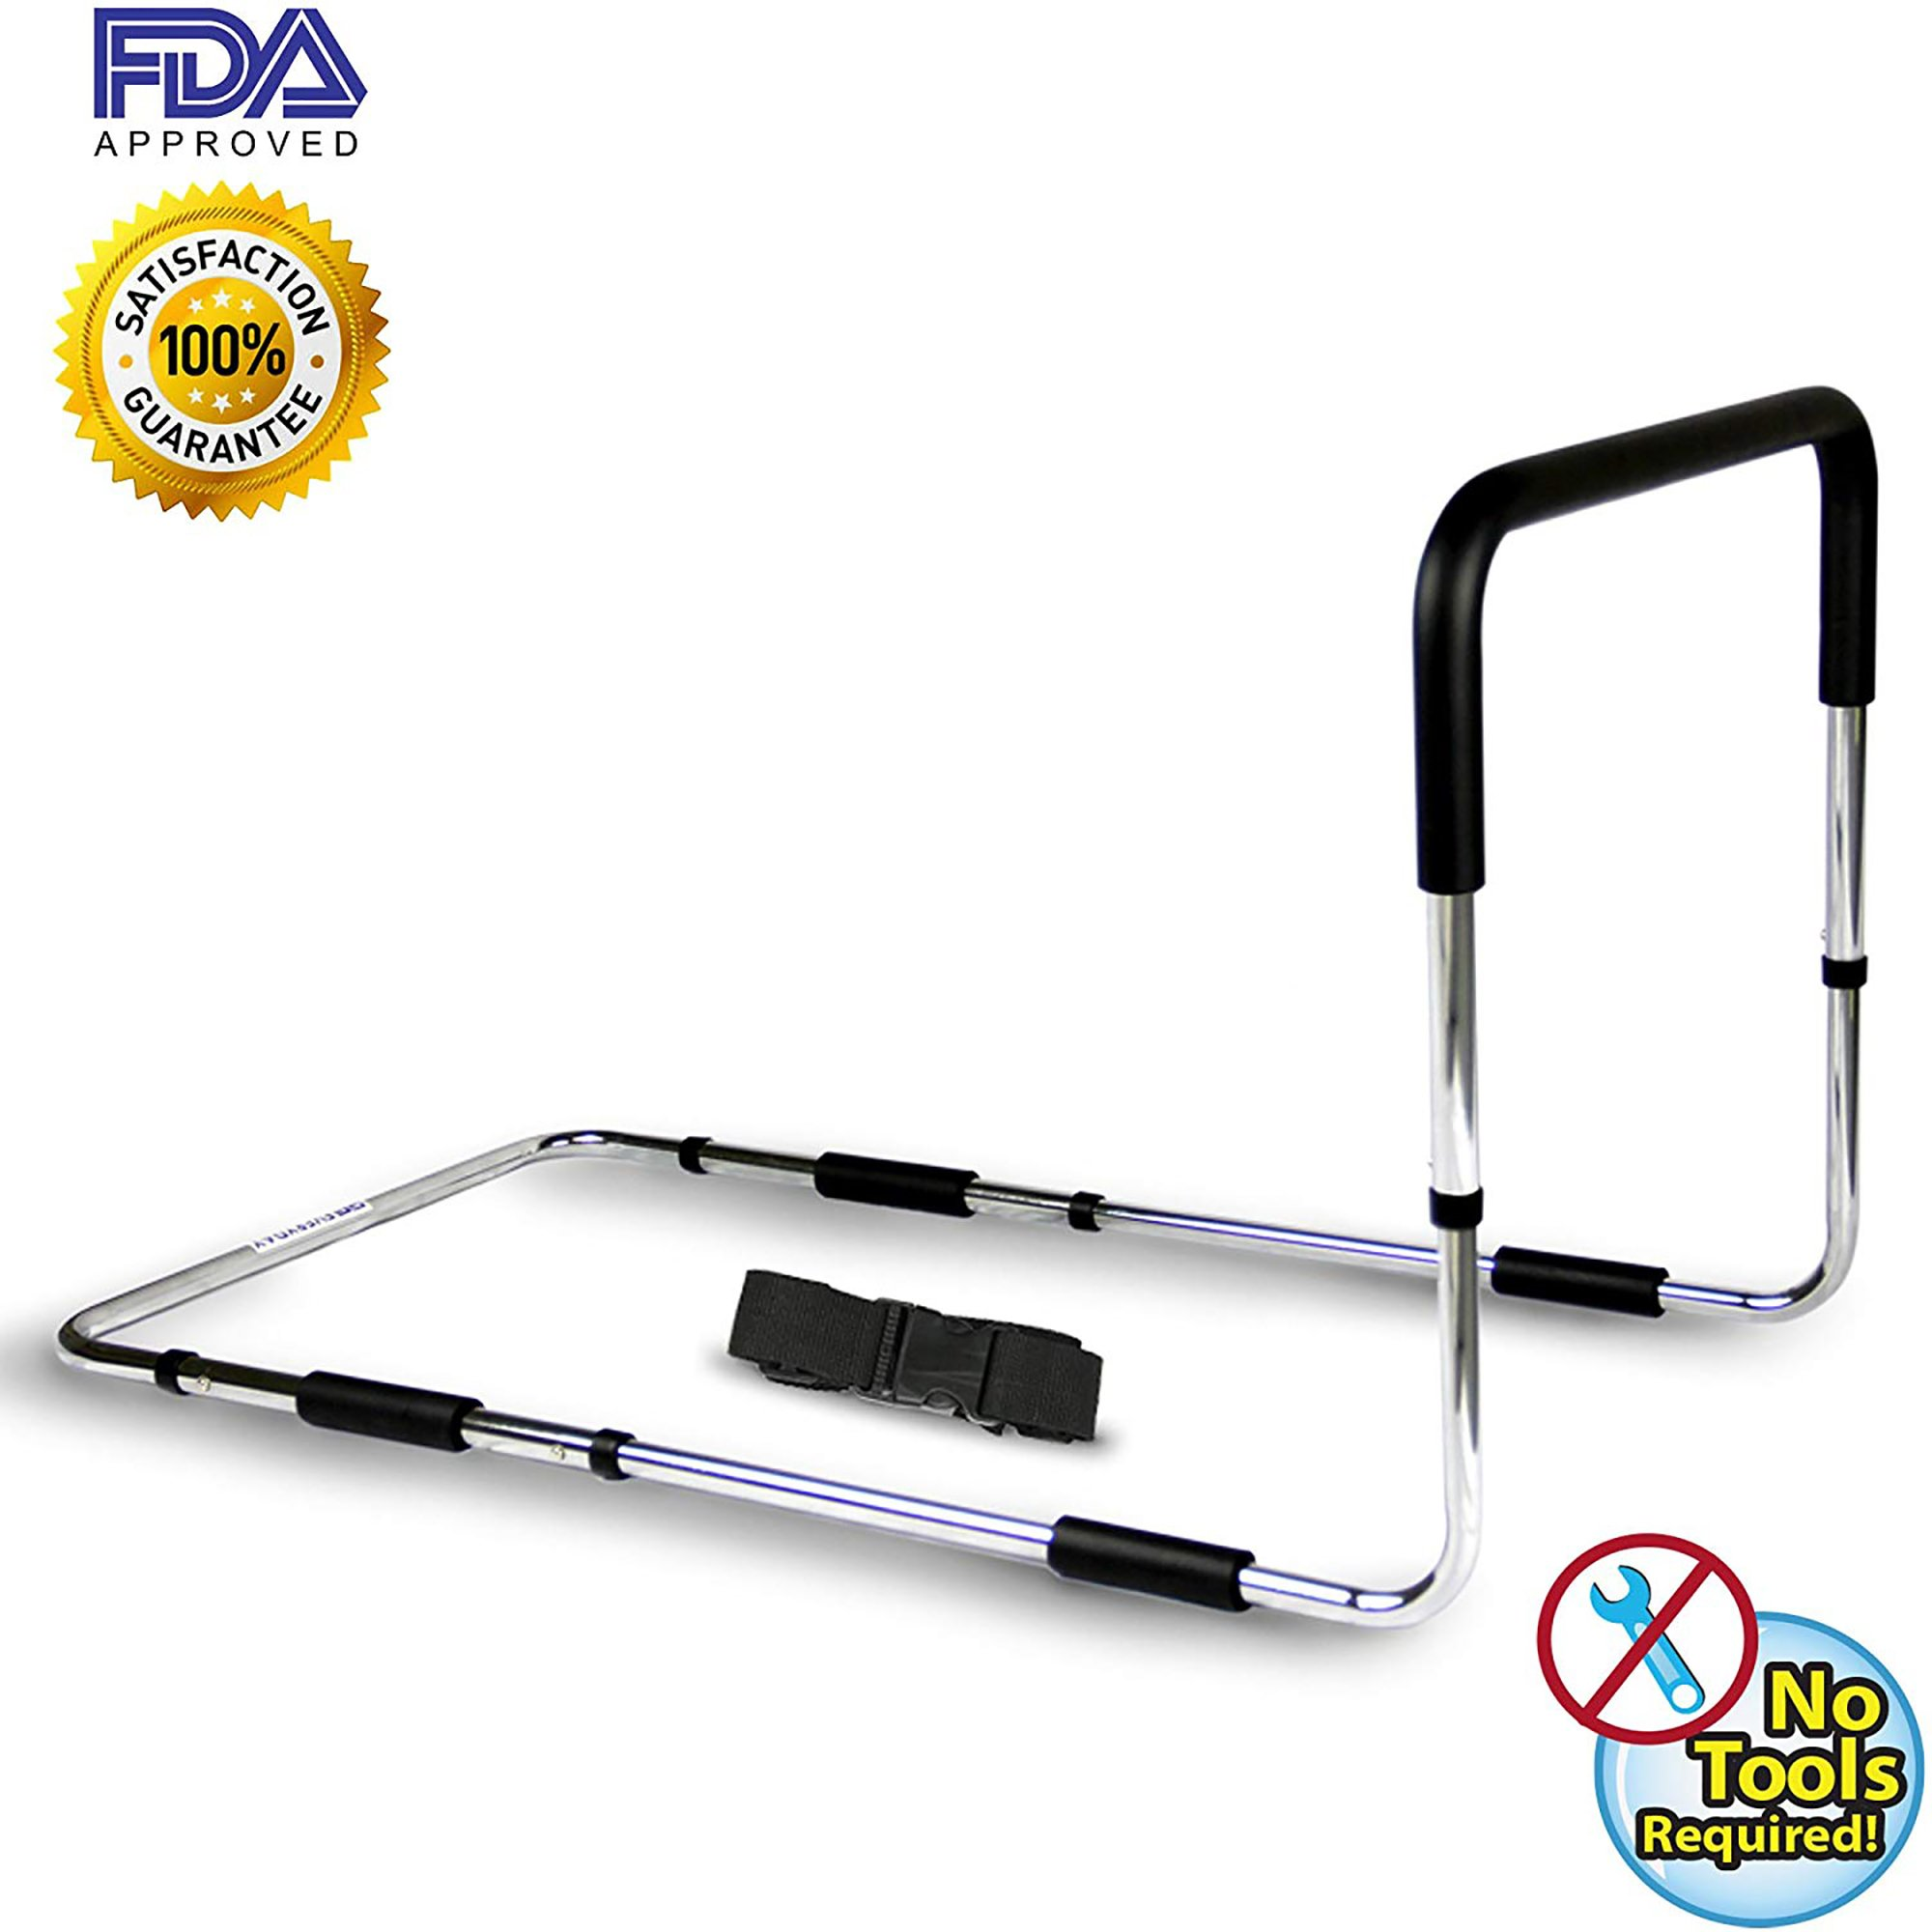 Everyday Medical Adjustable Bed Rail, Metal Bed Mobility Bar, Bed Safety Rails For Adults Offers Unrivalled Assistance For Seniors, The Elderly, Injured and Disabled, Suitable For Double & Que Bed